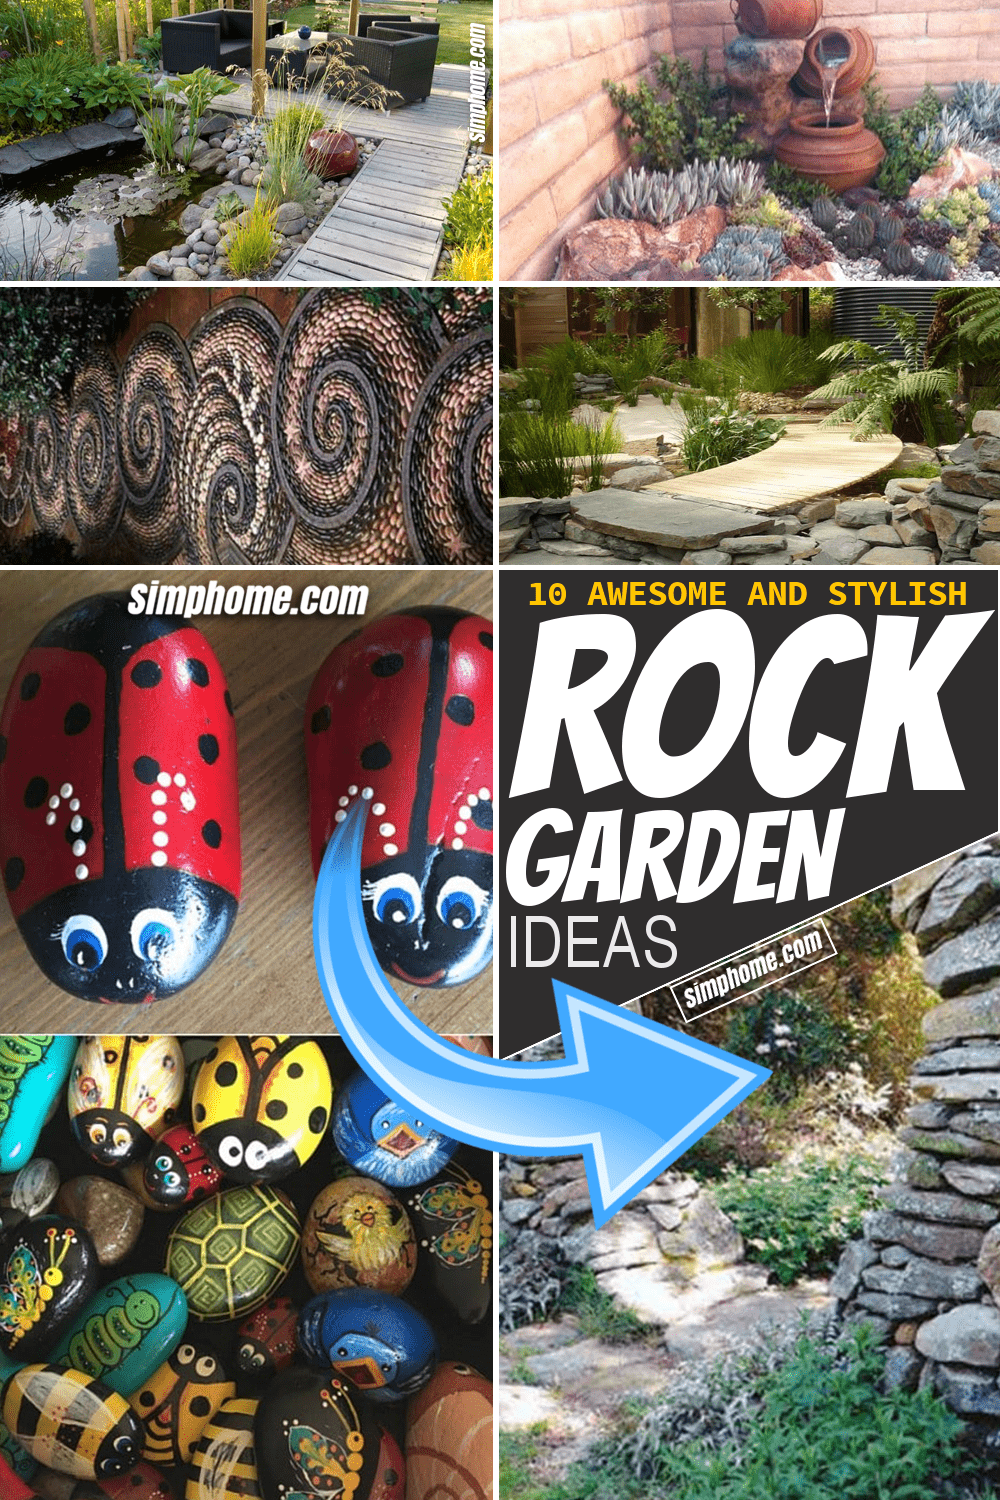 Simphome.com 10 Awesome and Stylish Rock Garden Ideas Pinterest Featured Image